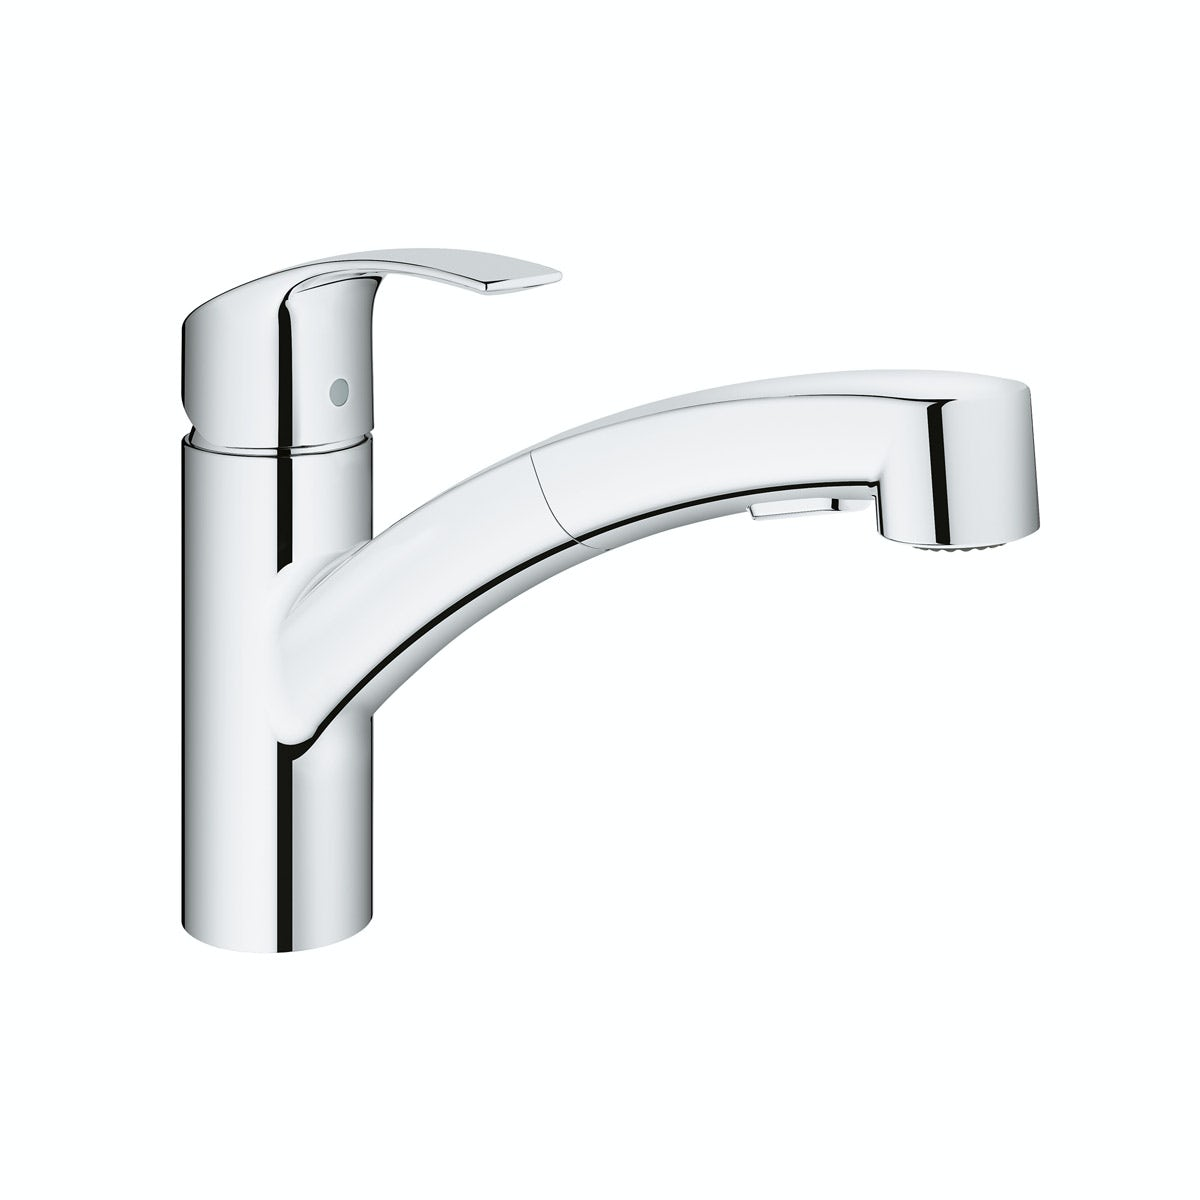 Grohe Eurosmart kitchen tap with pull out spout